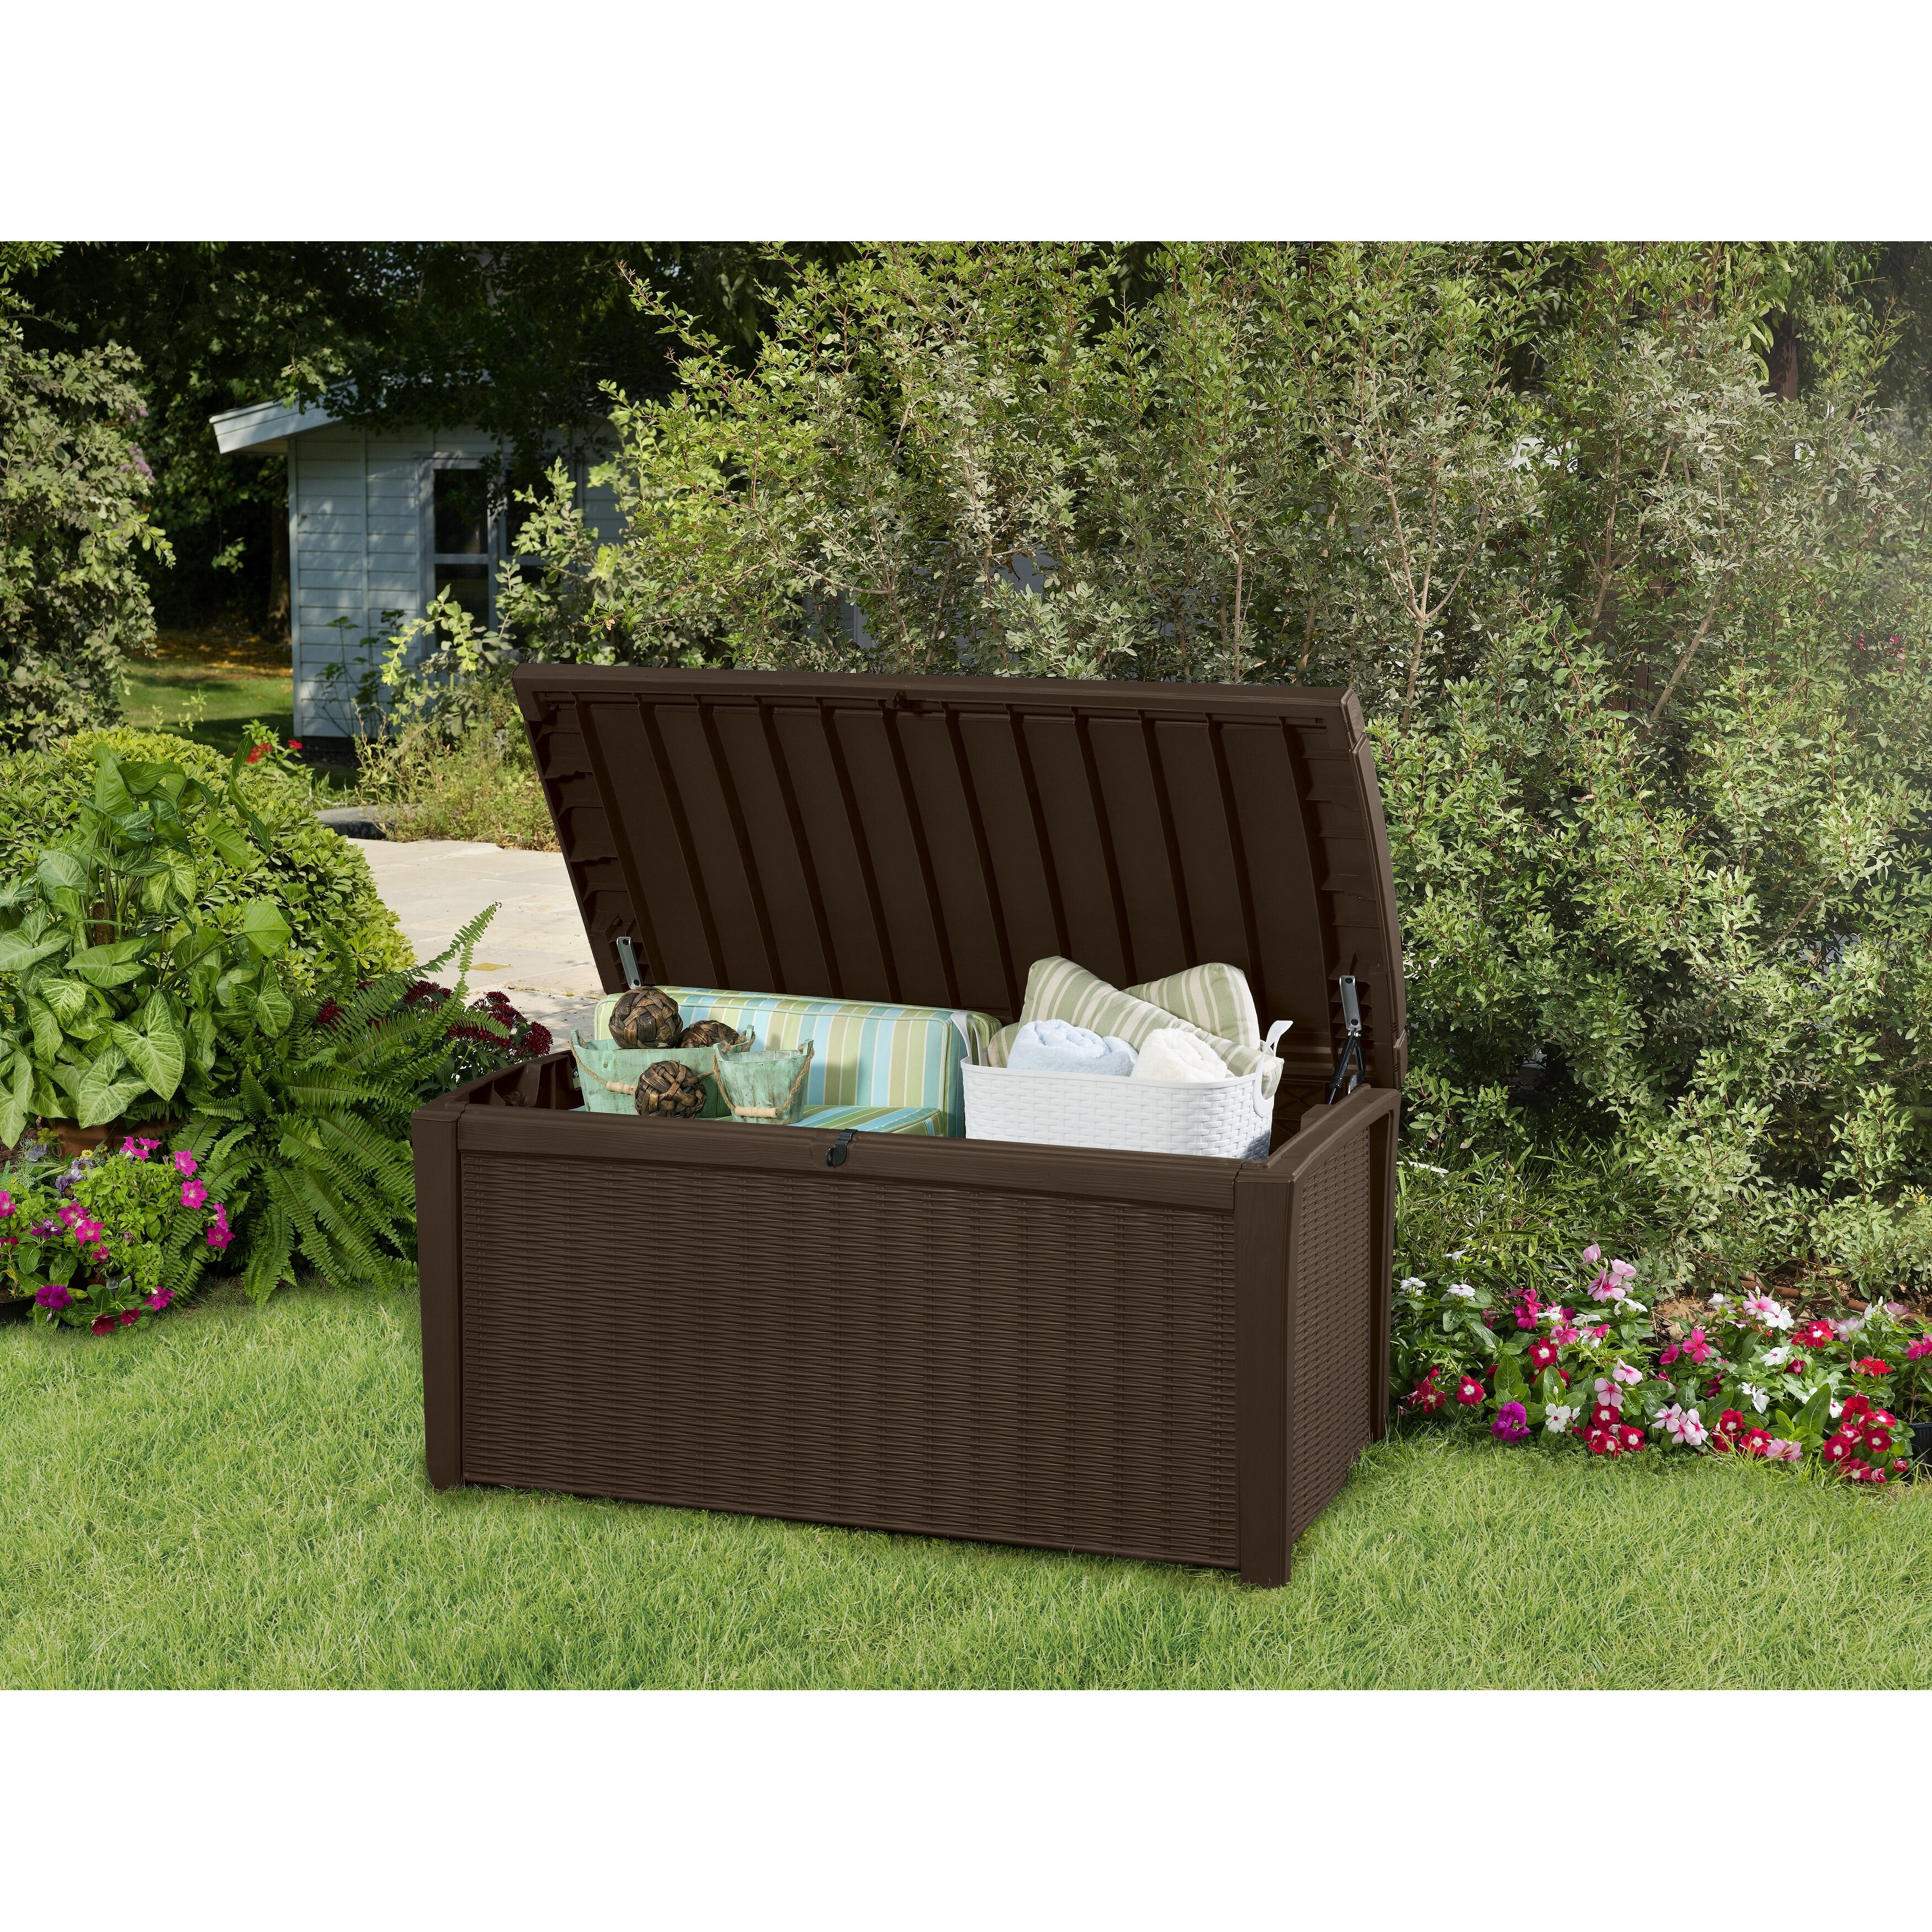 keter borneo 110 gallon plastic outdoor storage deck box reviews wayfair. Black Bedroom Furniture Sets. Home Design Ideas